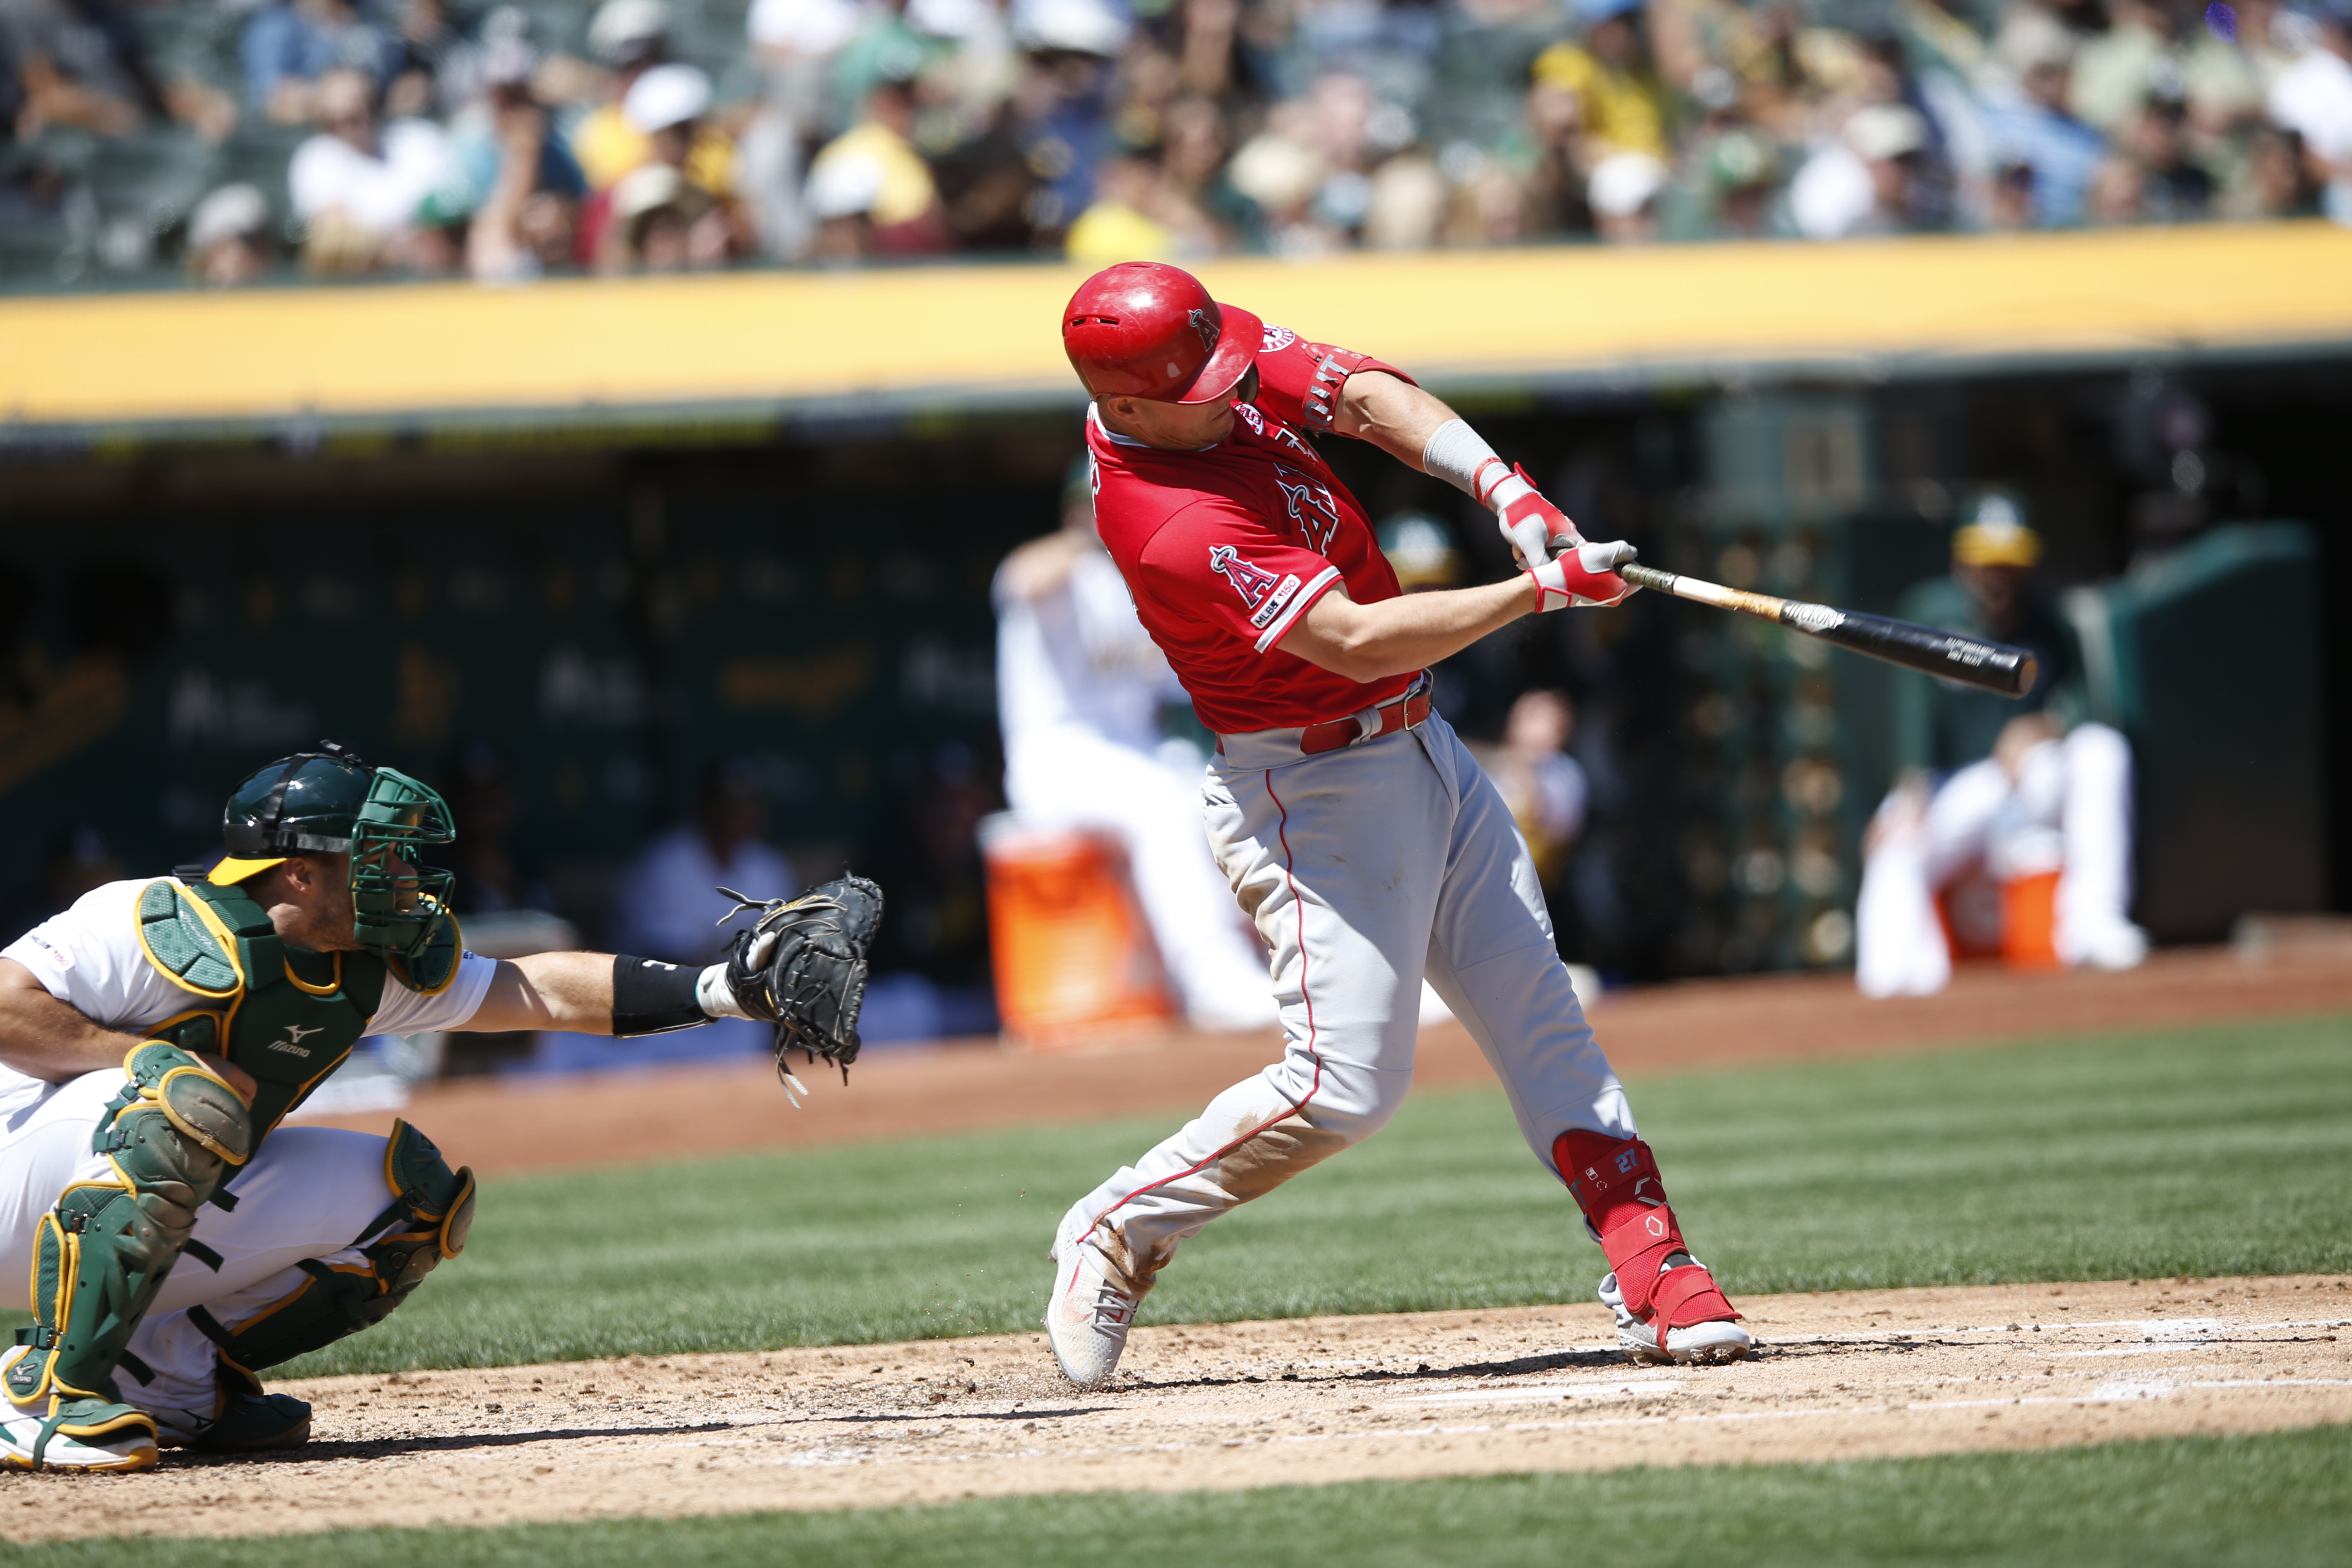 Mike Trout #27 of the Los Angeles Angels of Anaheim hits a home run during the game against the Oakland Athletics at the Oakland-Alameda County Coliseum on September 5, 2019 in Oakland, California. The Athletics defeated the Angels 10-6.